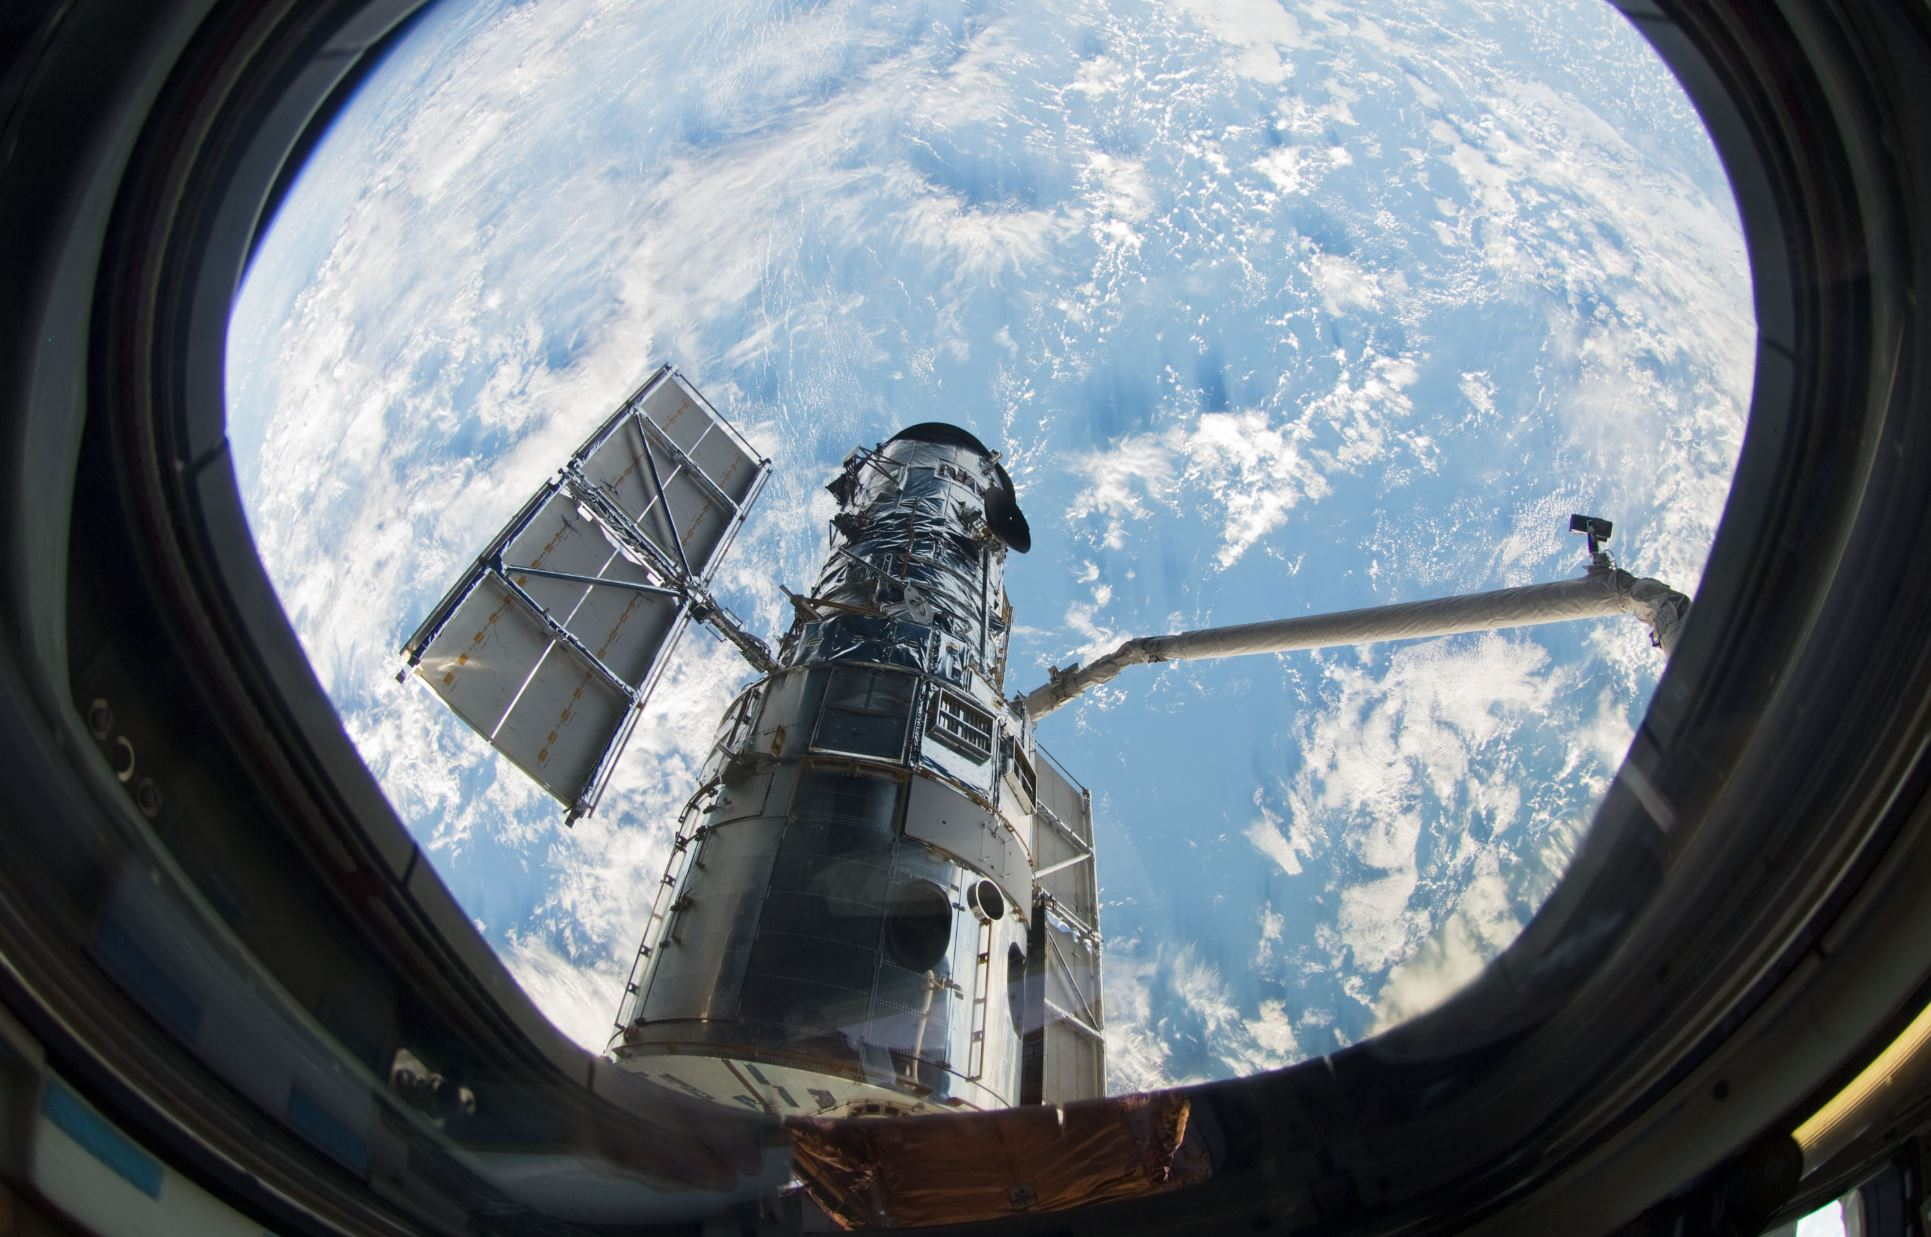 A window on the space shuttle Atlantis frames Hubble as astronaut Megan McArthur uses the shuttle's robot arm to grab the telescope in preparation for the final servicing mission. From its perch 340 miles above Earth, the famed space telescope has tracked celestial objects across the universe. - Image Credit: NASA